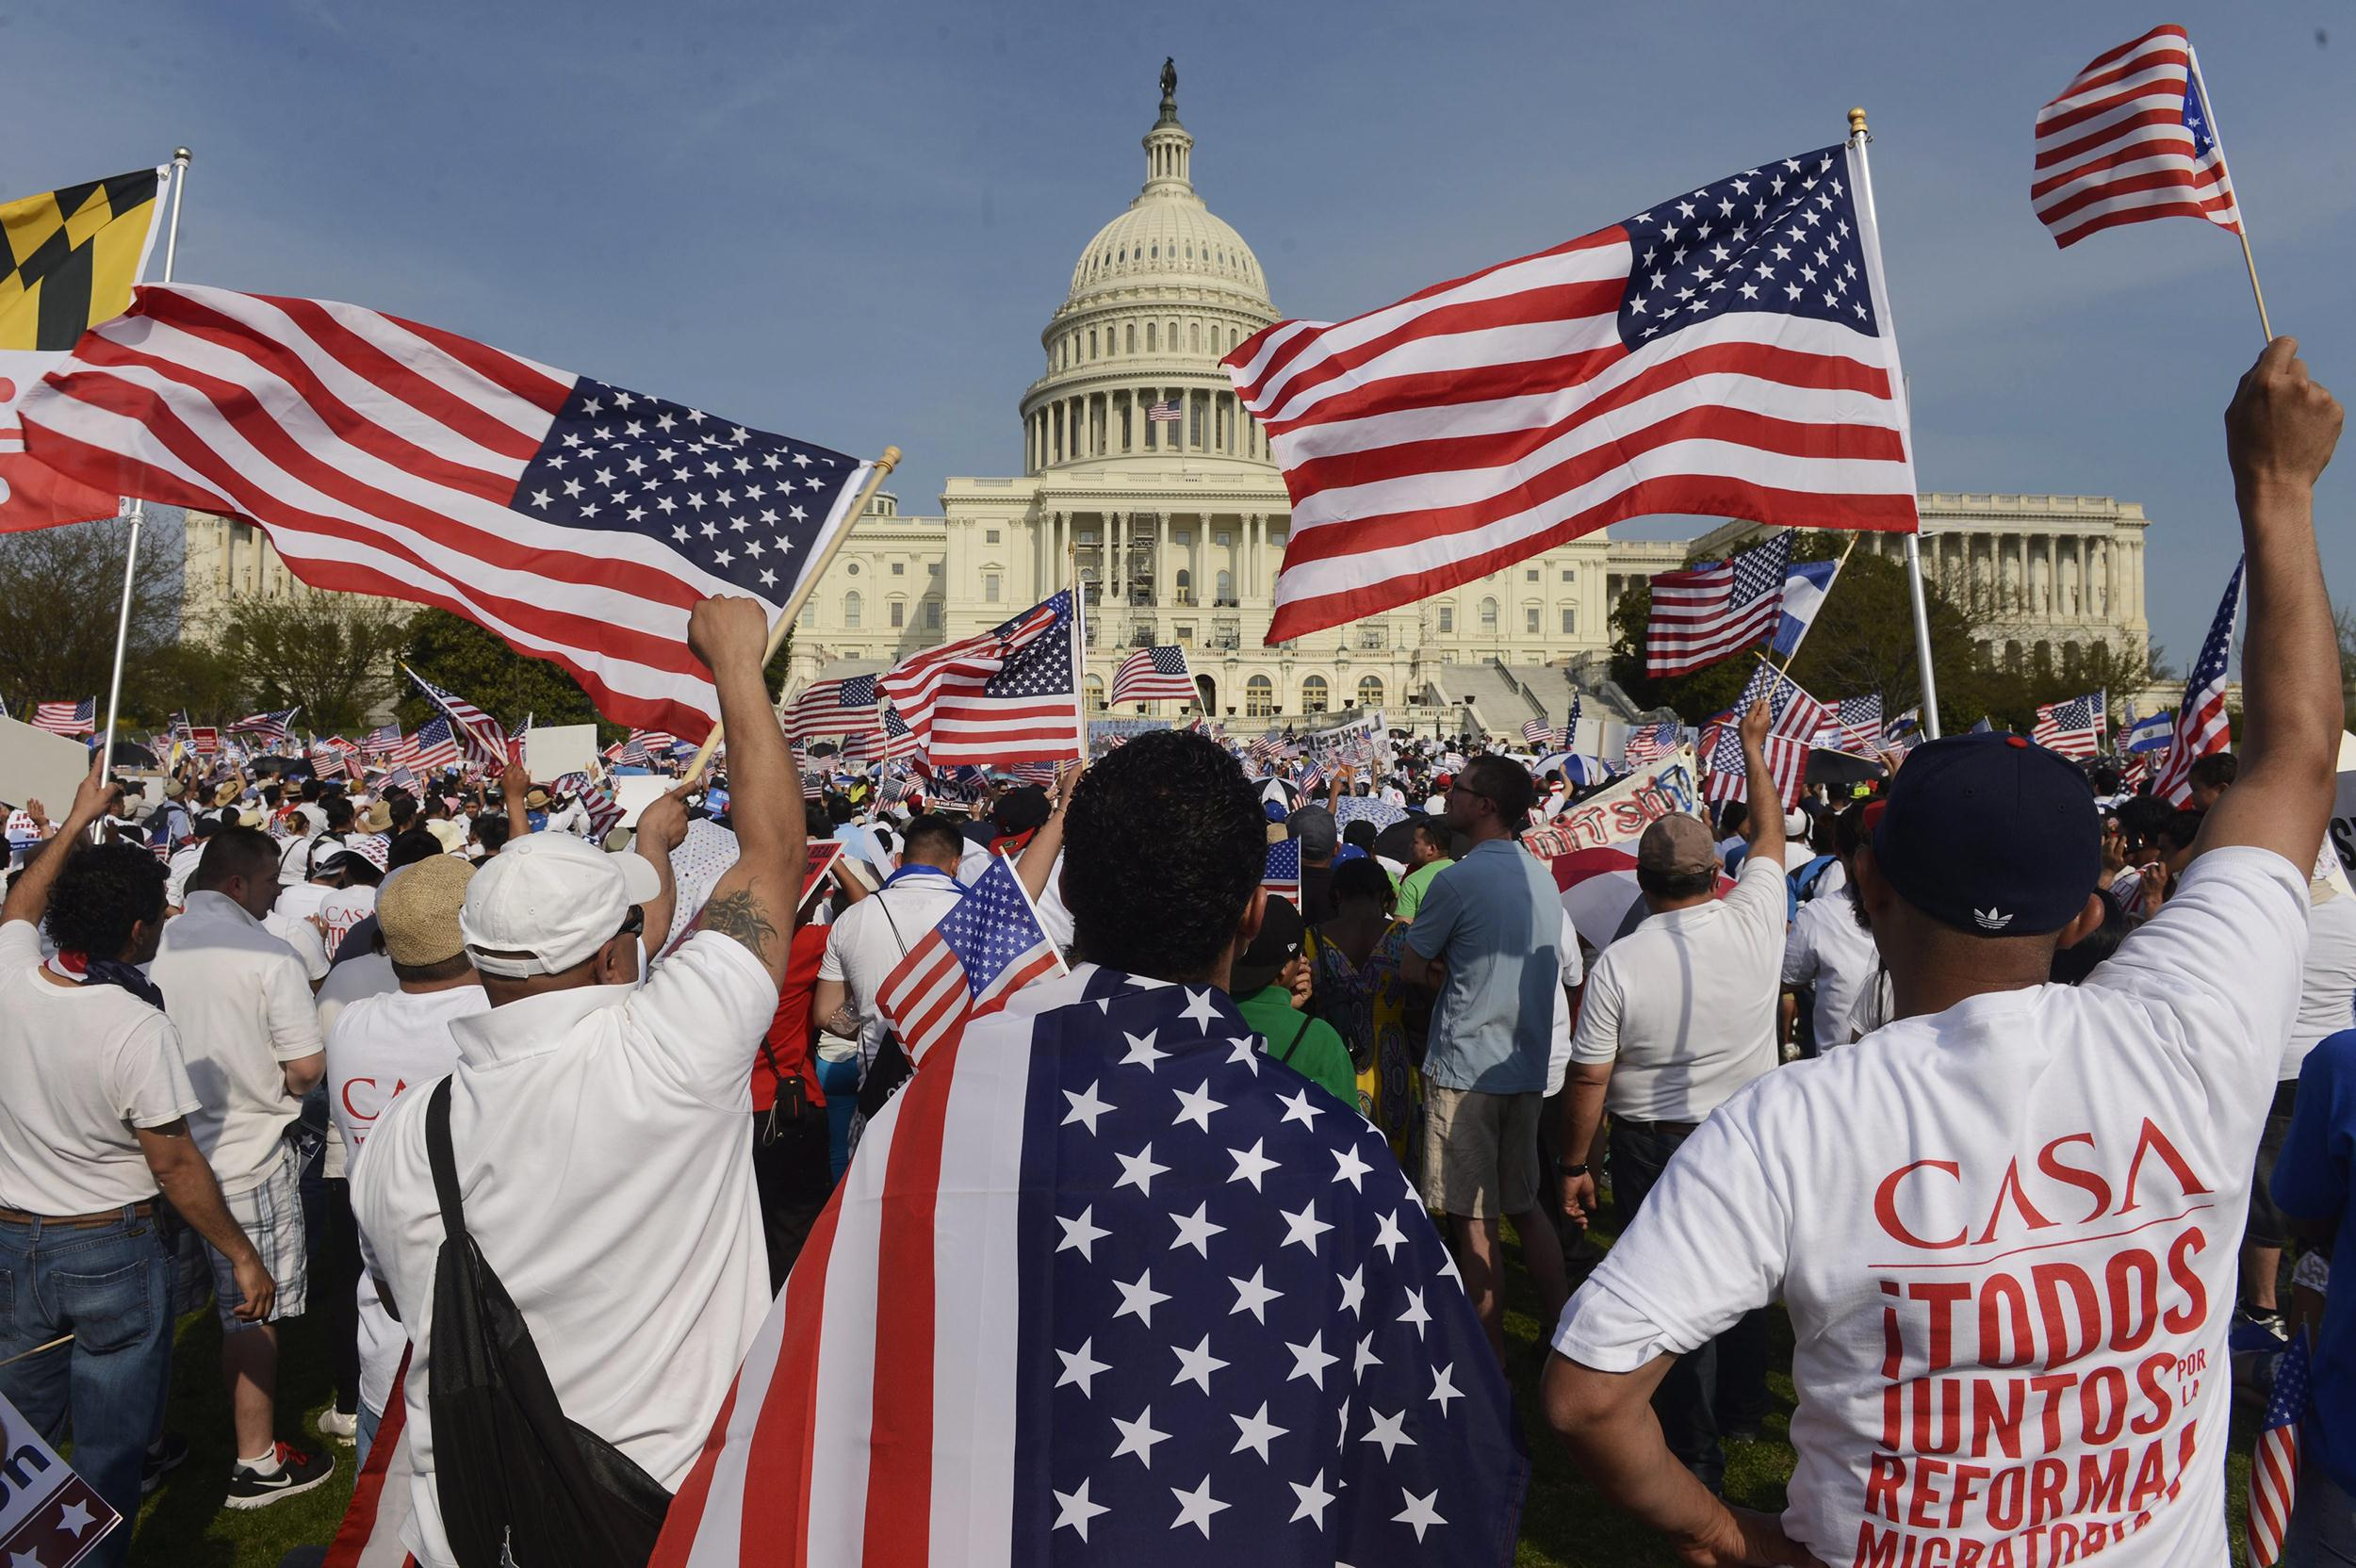 Image: People show their support during a rally for comprehensive immigration reform on the West Front of the US Capitol